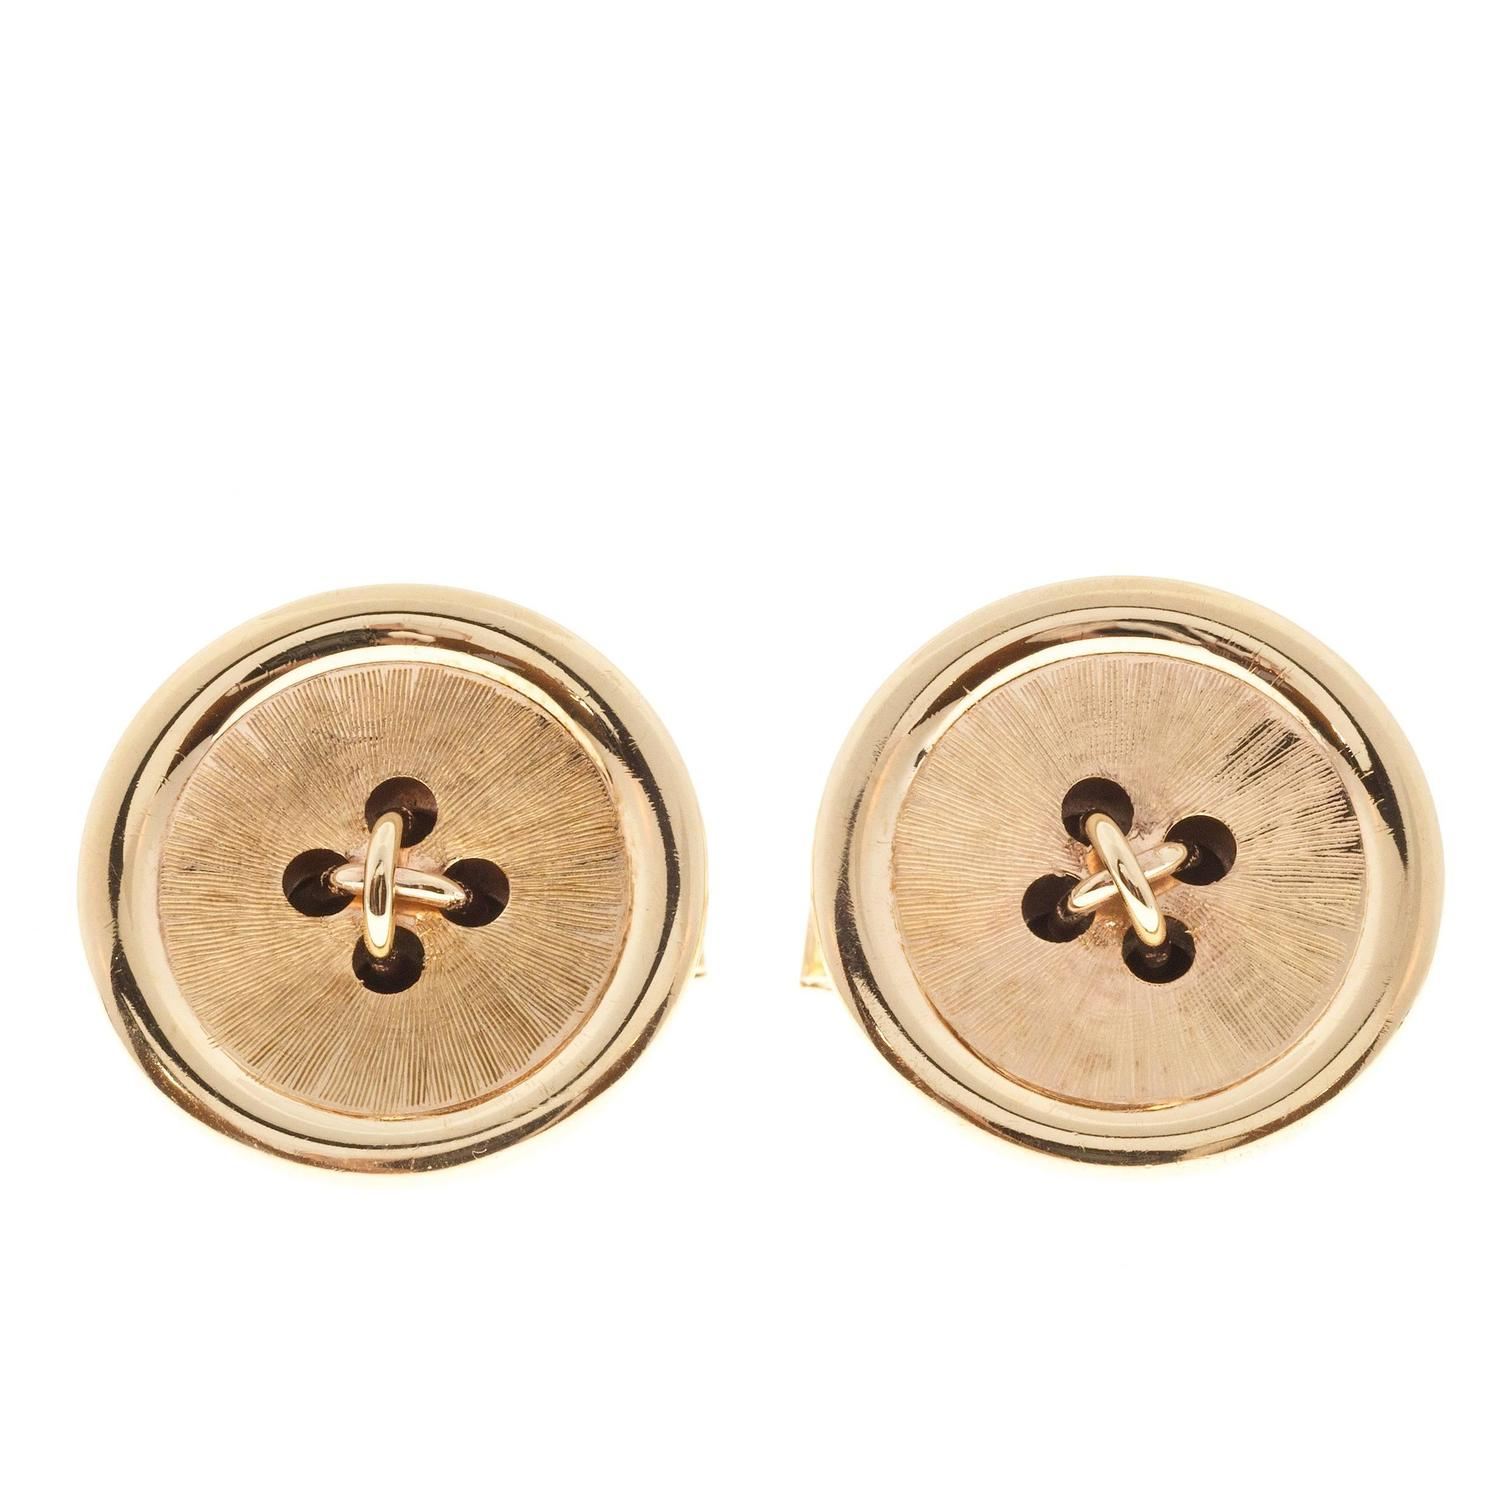 1950s Gold Button Style Cufflinks For Sale at 1stdibs